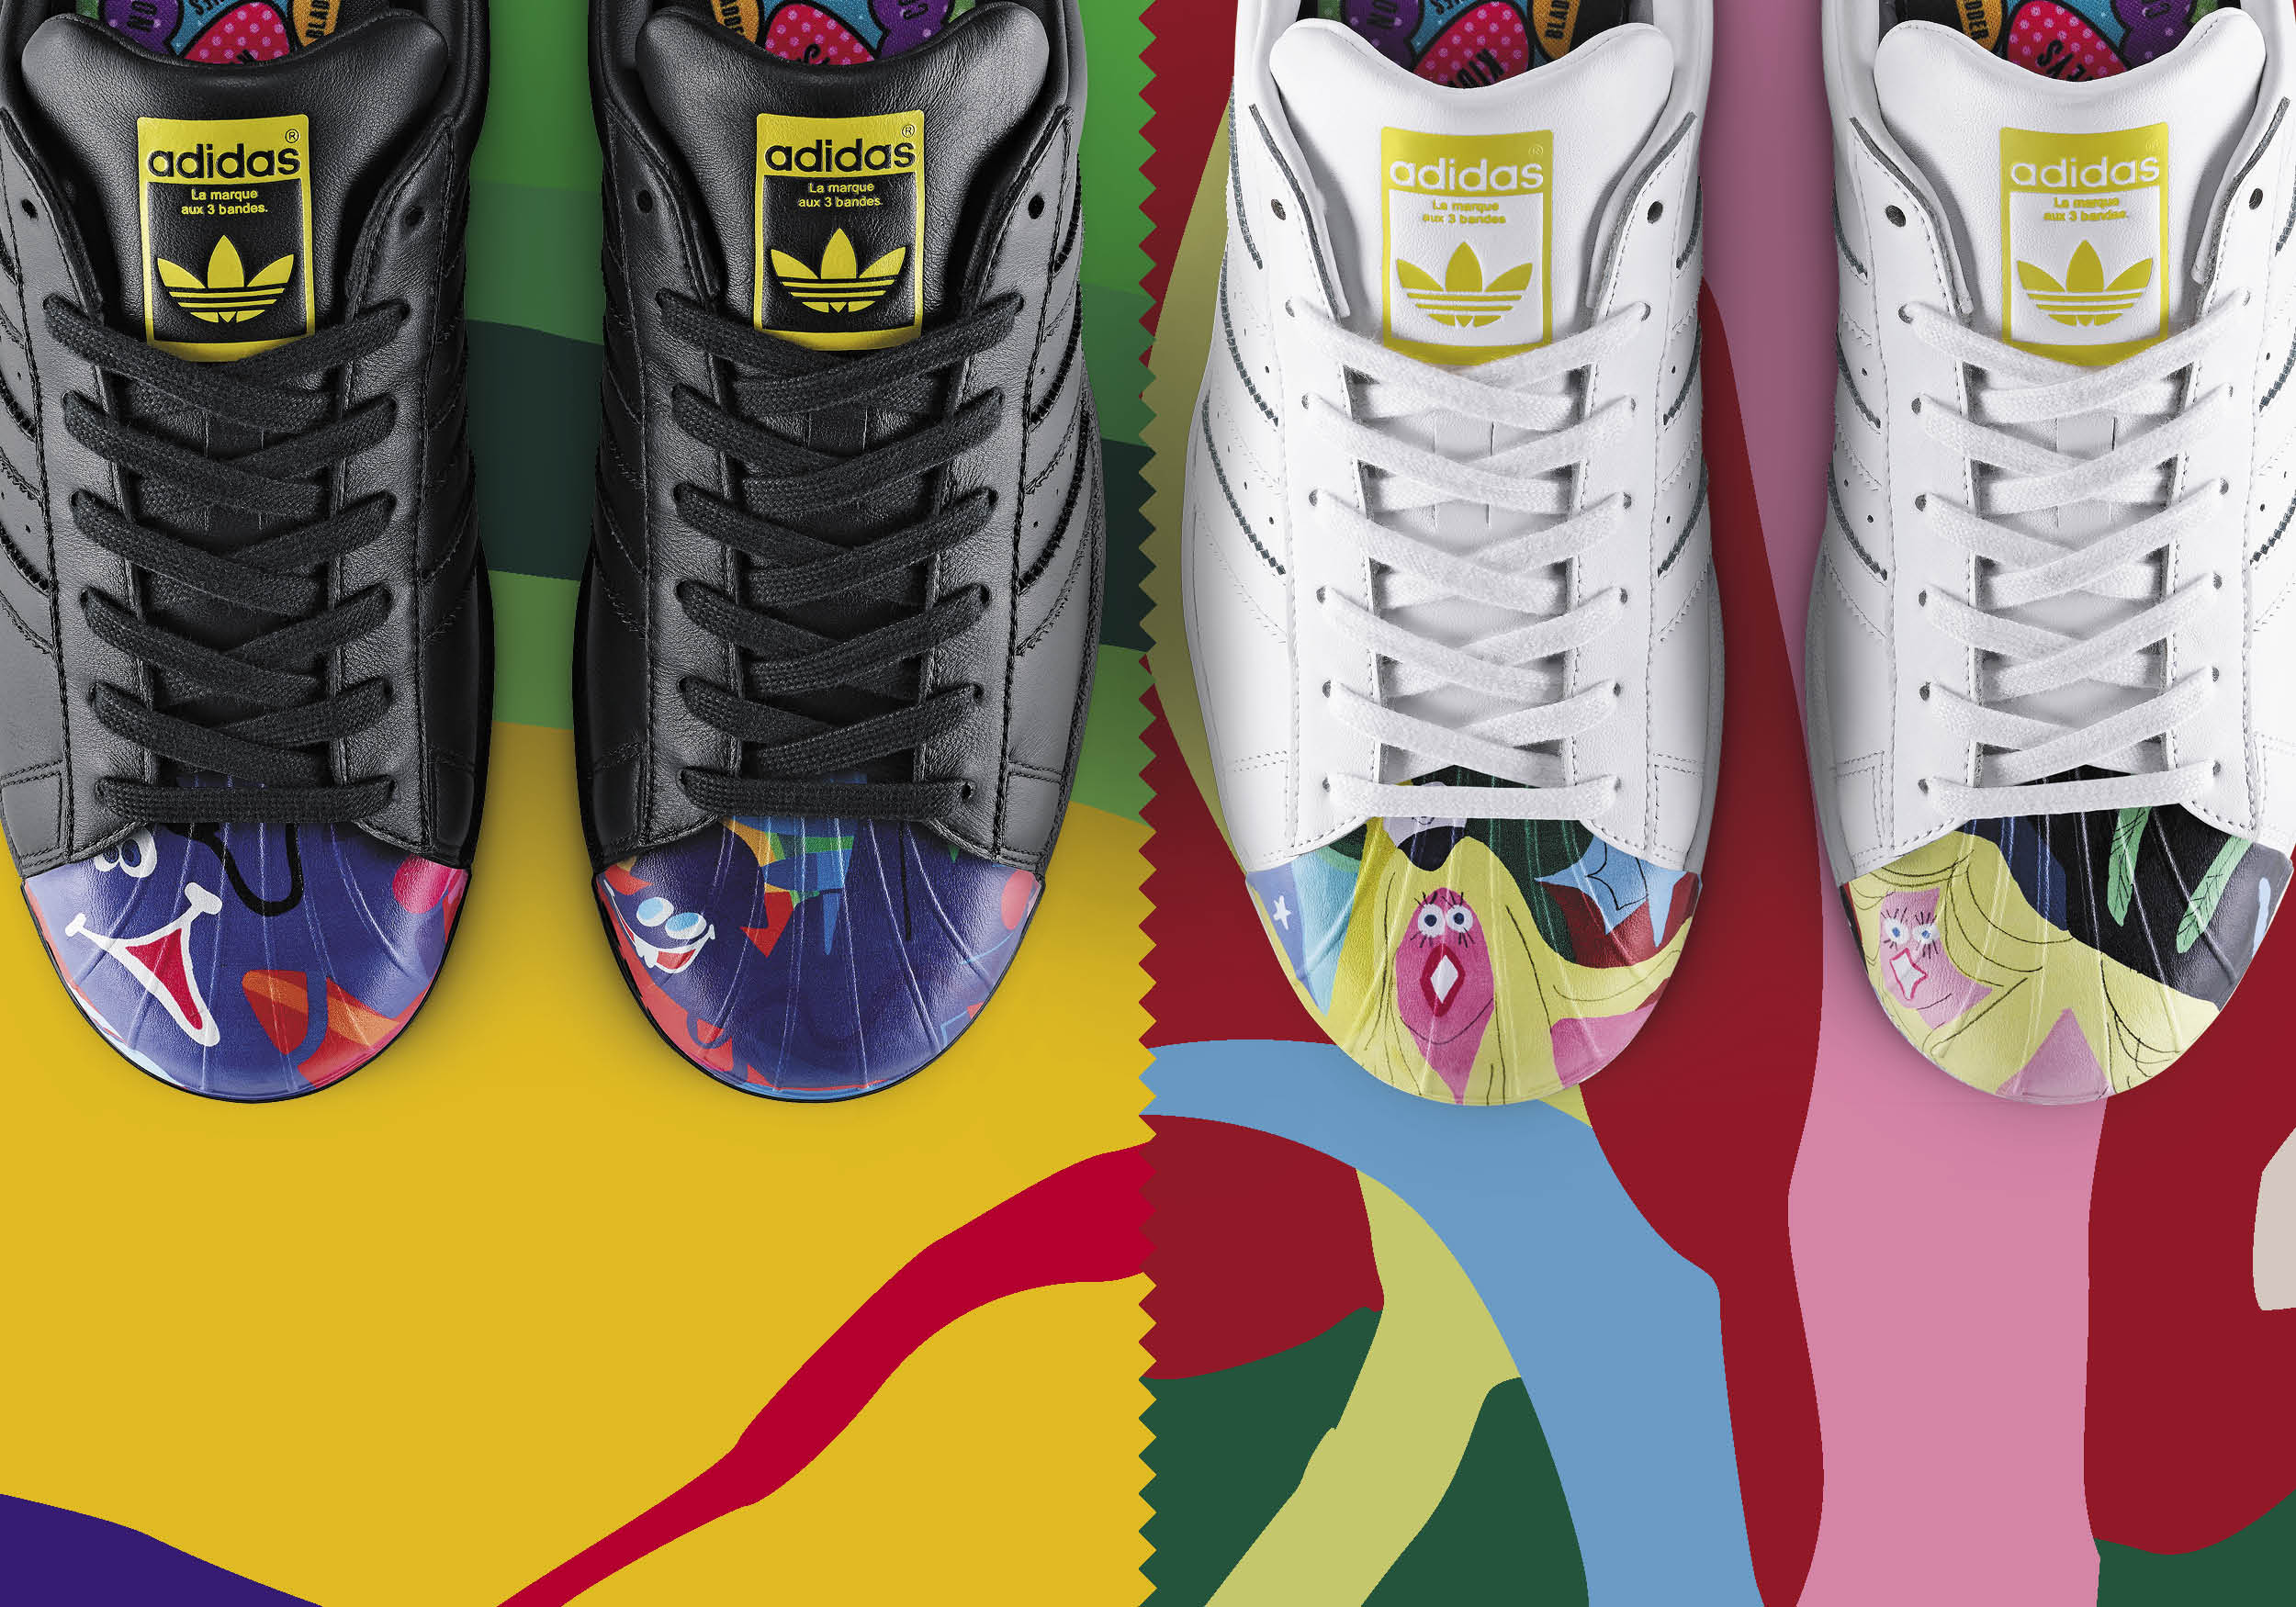 adidas superstar artwork collection